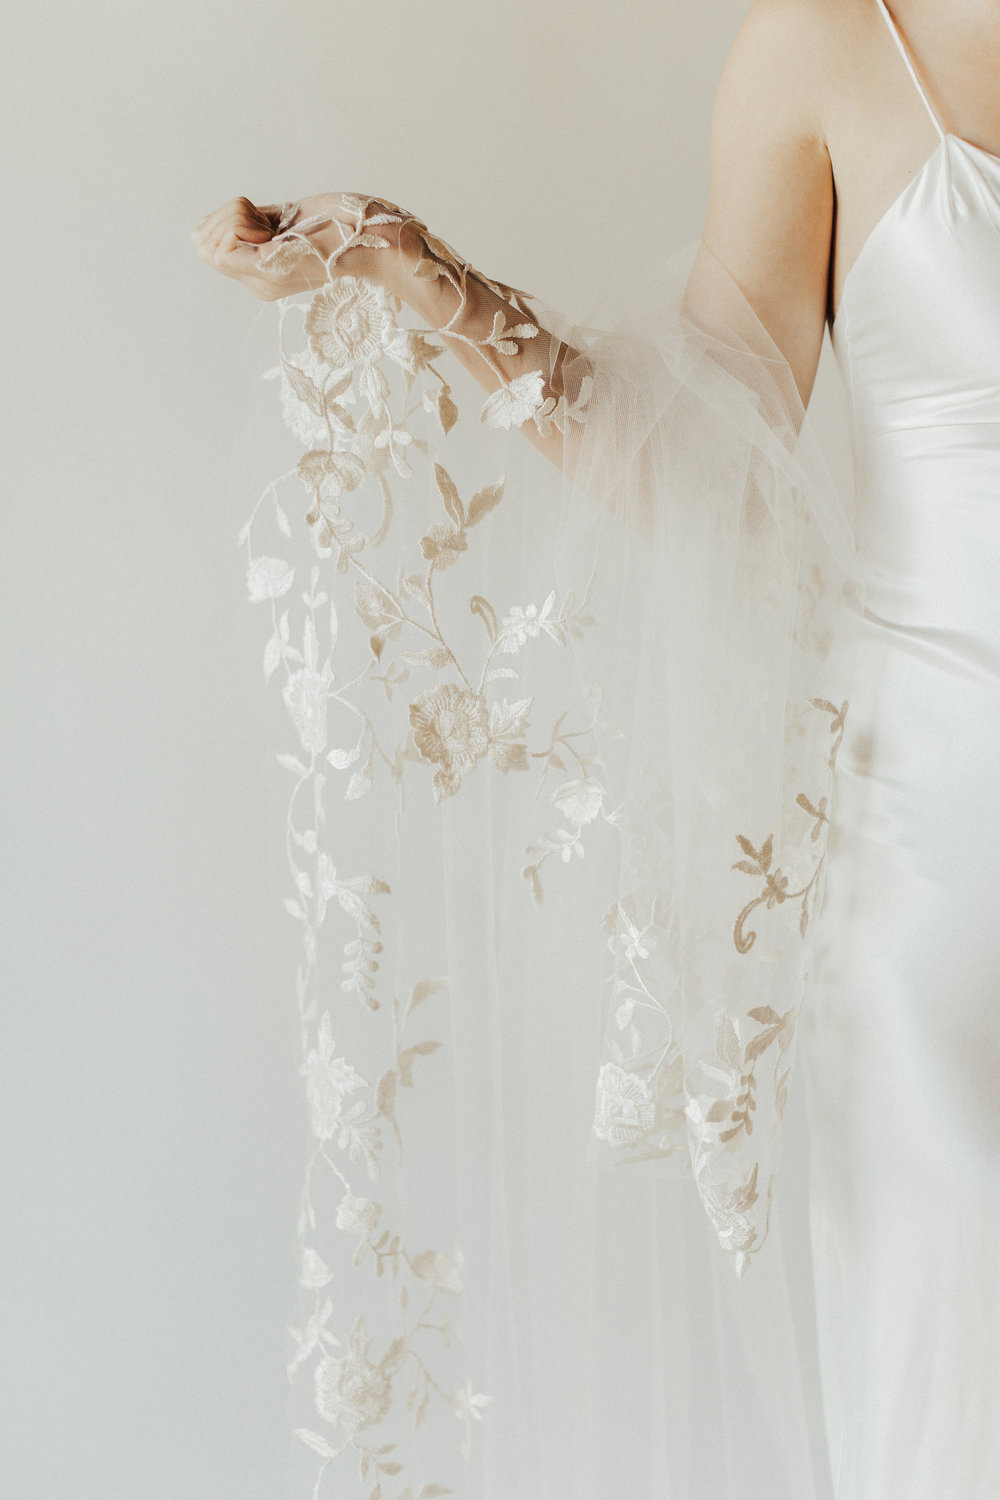 Flora Veil   Details: One tier with hand embroidered lace detailing on edging  Cathedral Full Embroidery $1,138   Cathedral Half Embroidery $658